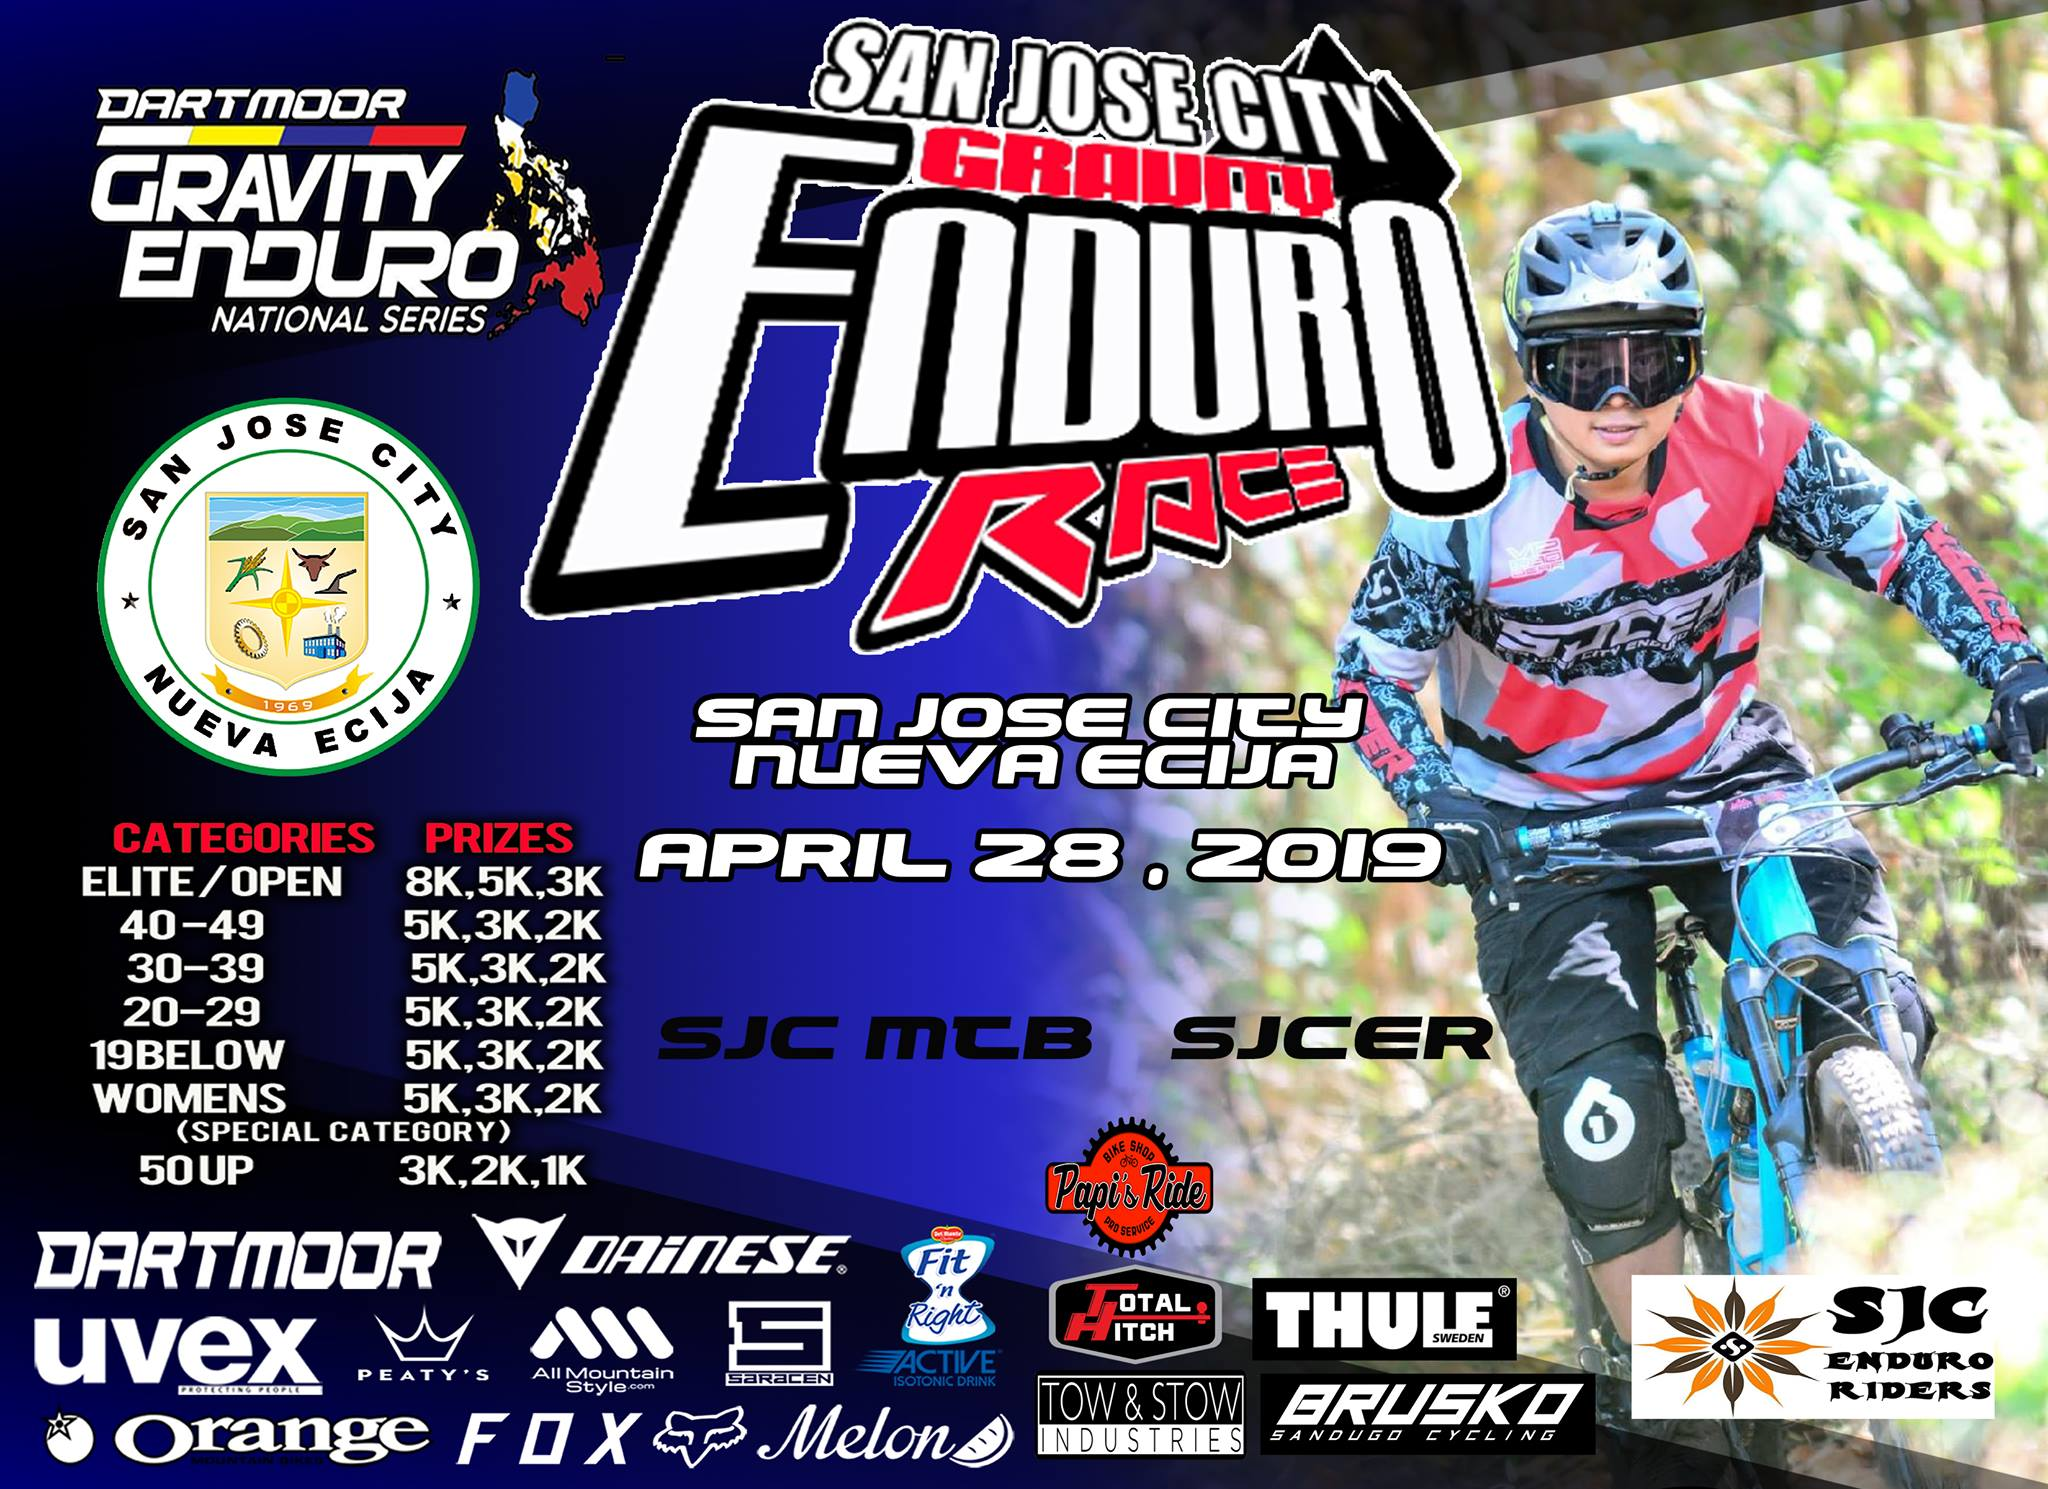 SAN JOSE CITY GRAVITY ENDURO RACE